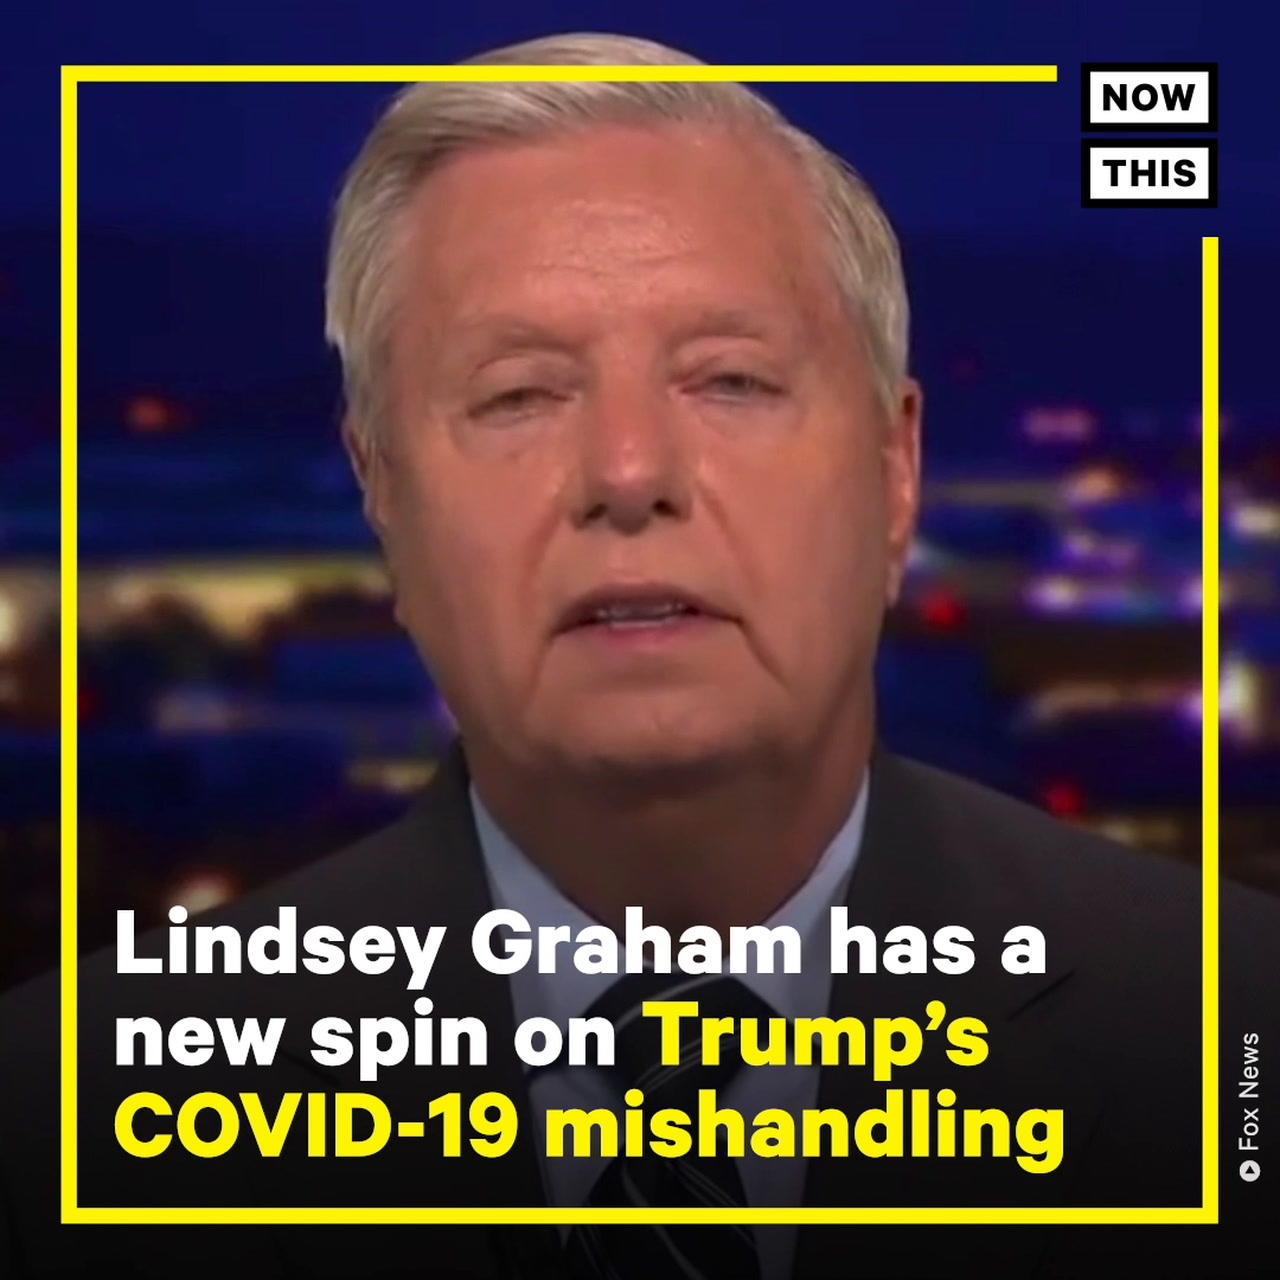 Lindsey Graham Says Trump Would Be President Today If COVID-19 Lab Leak Theory is True